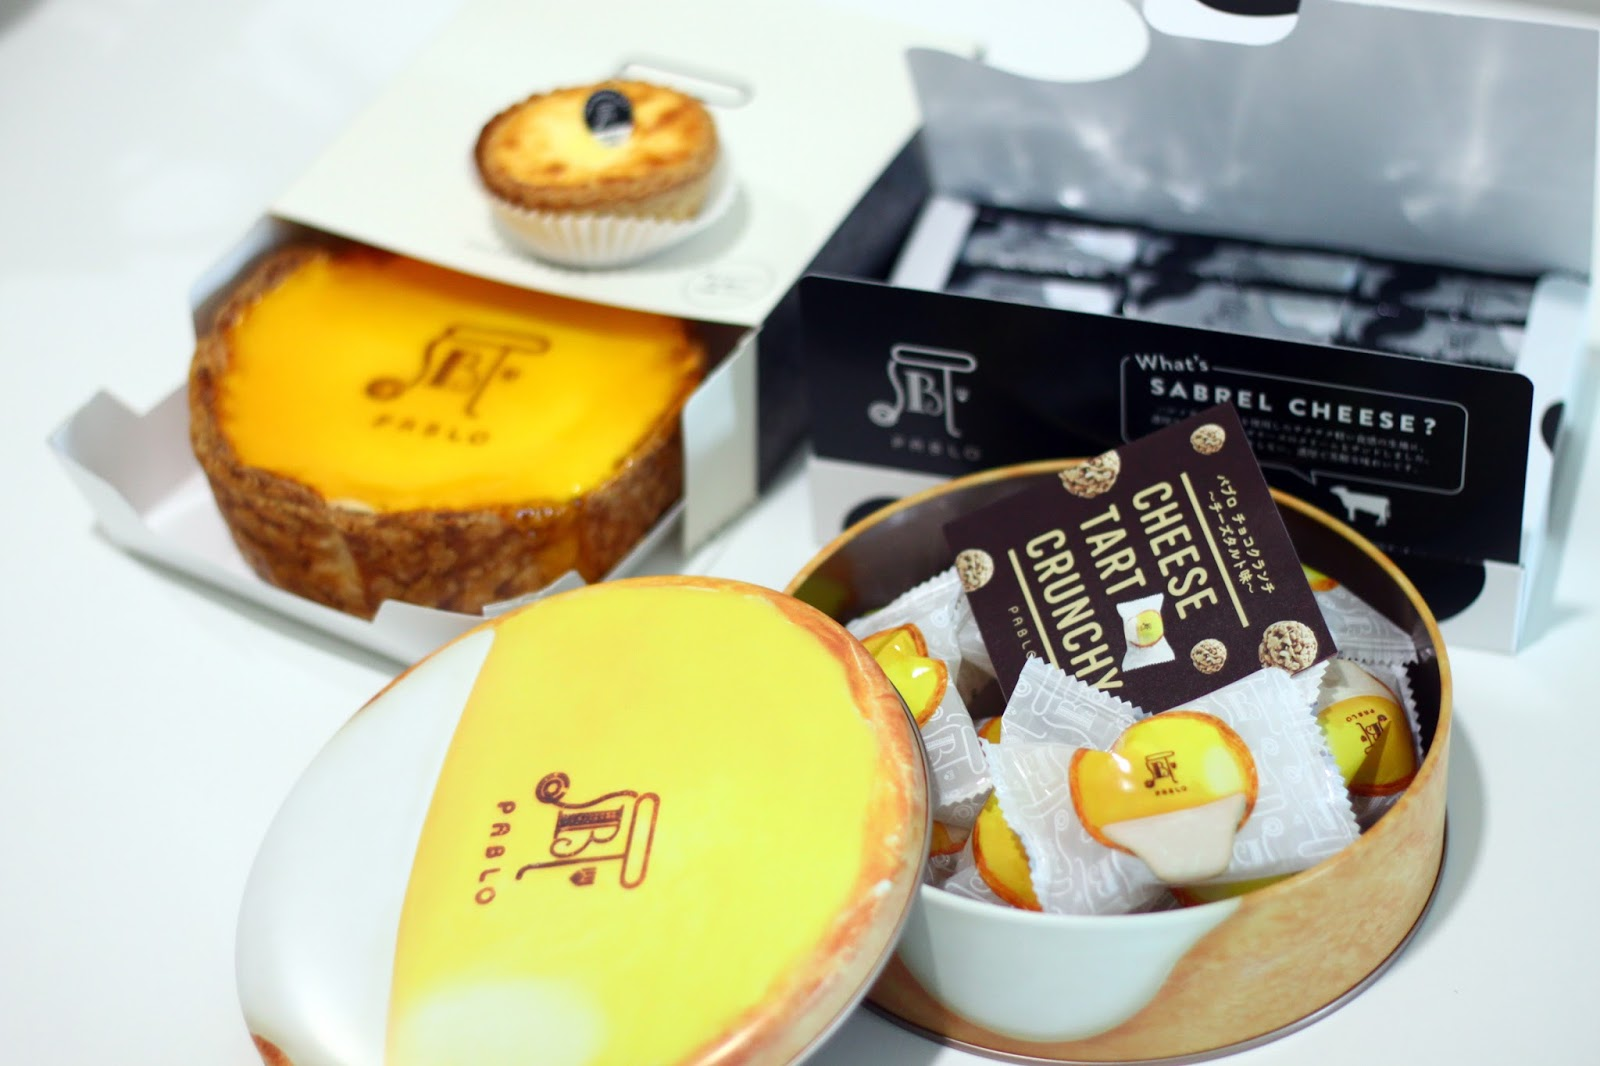 Pablo Japanese Cheese Tart 1 Utama Pj F I N D G A T S Sabrel Pablos Range Of Biscuits And Cookies This Is The Perfect Gift For Christmas Anyone That Enjoys Milk Cream Or